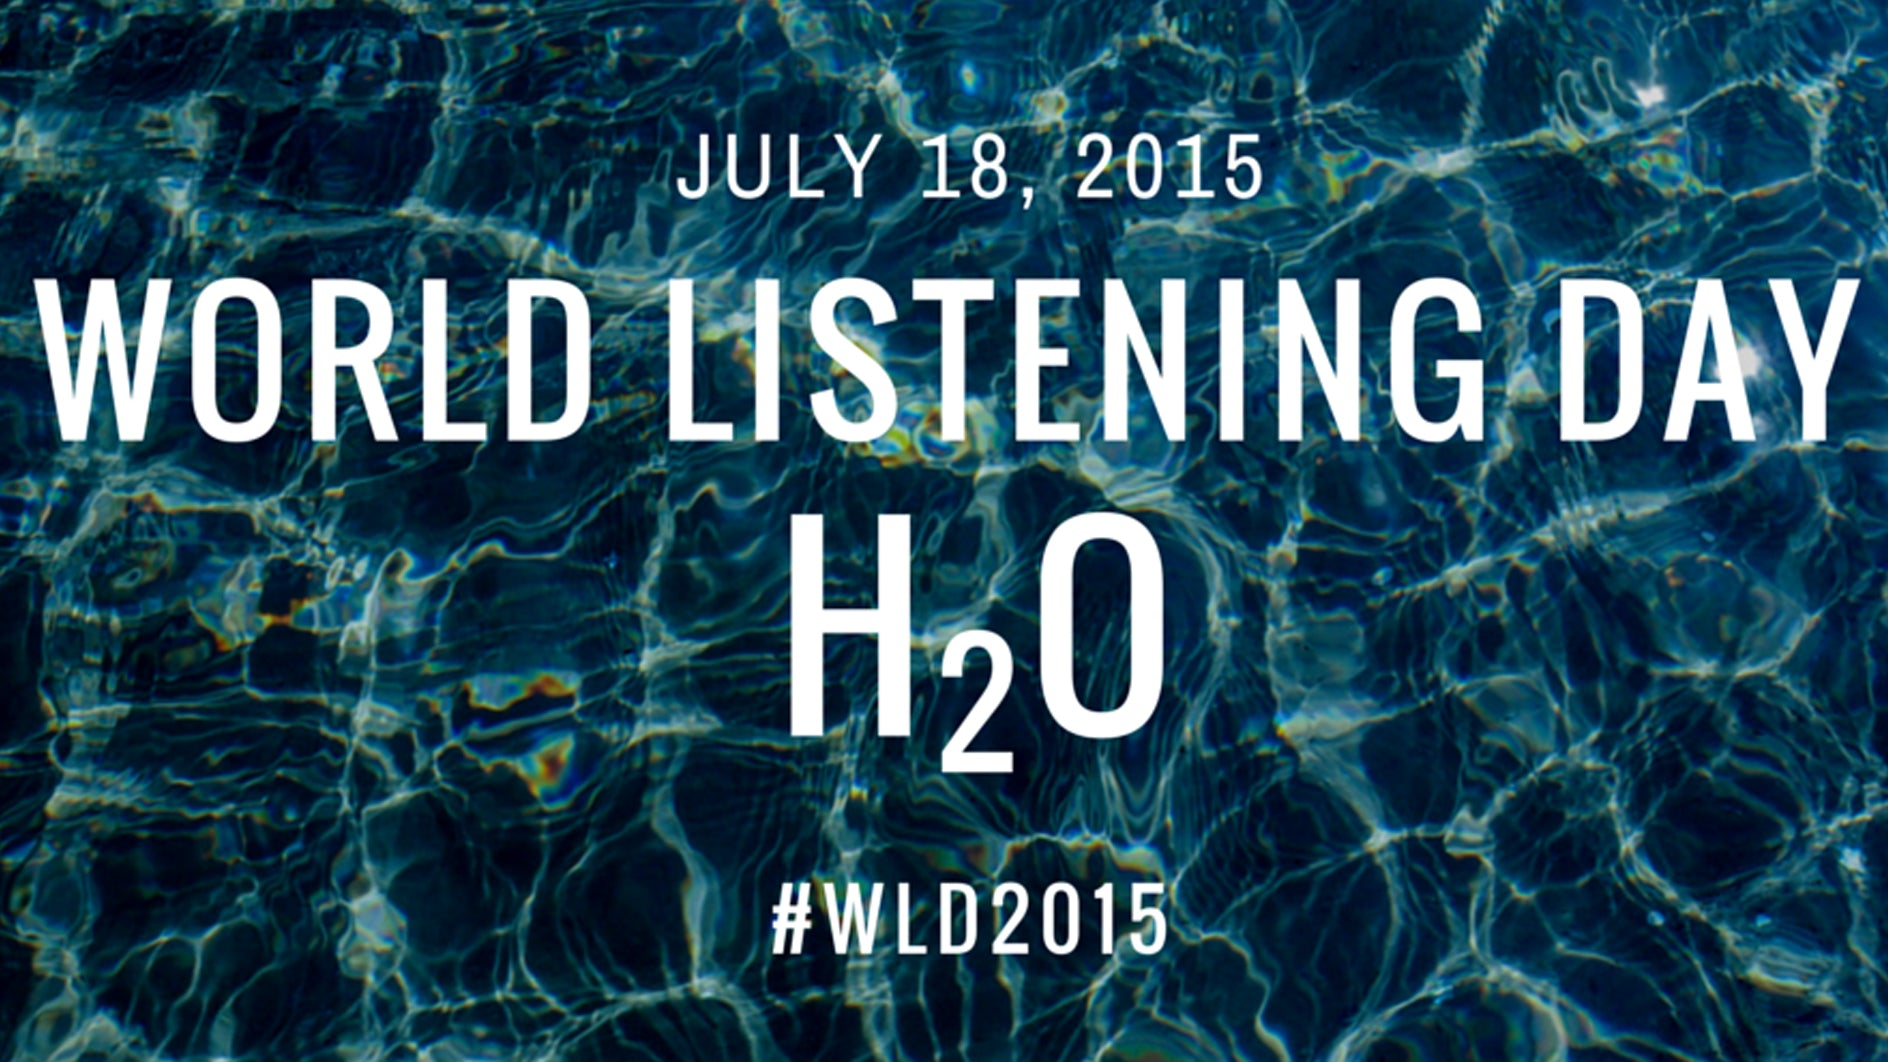 World Listening Day 2015 - H2O